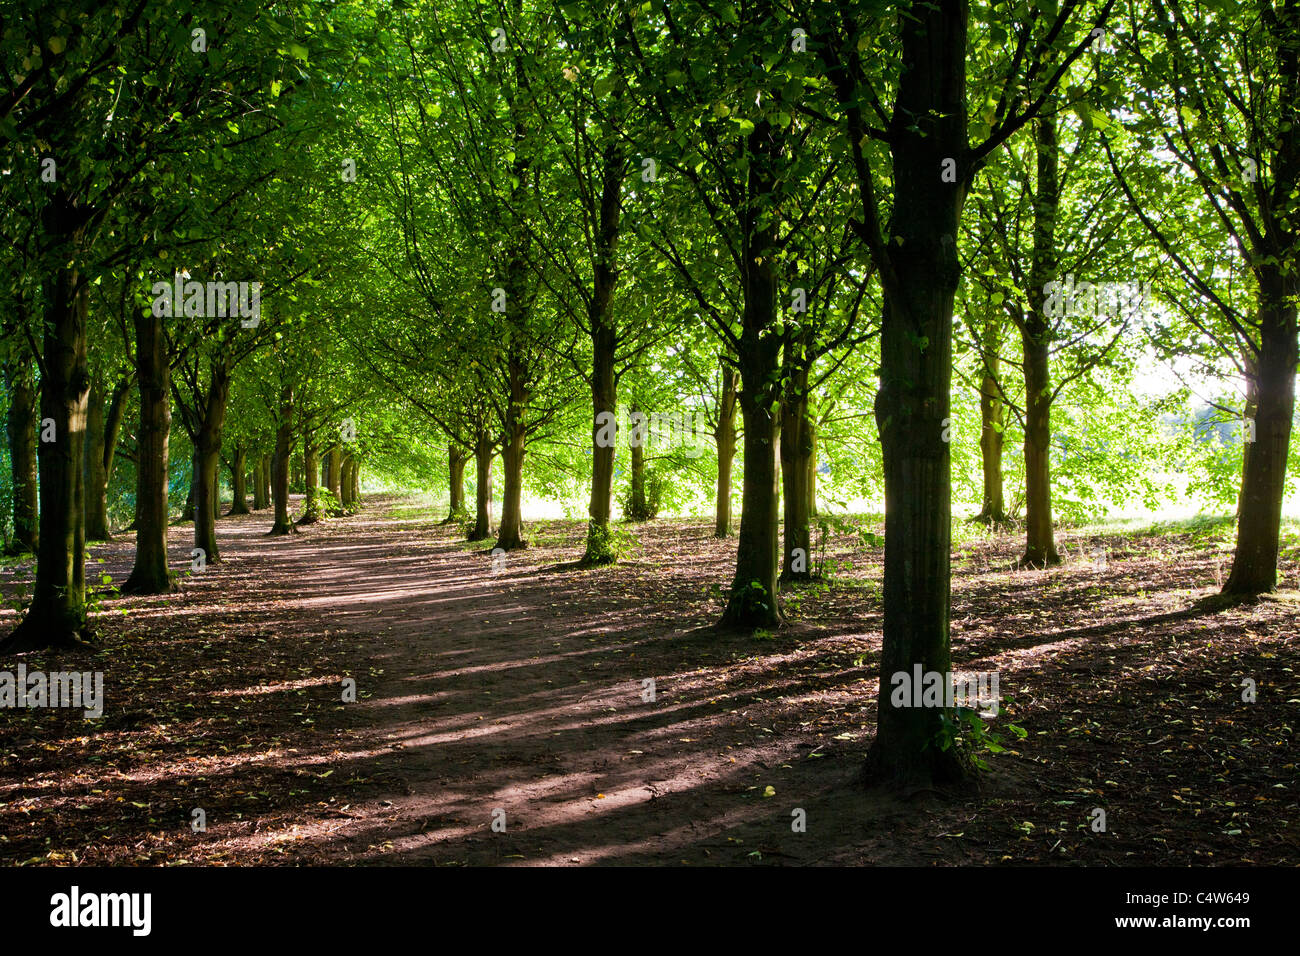 Evening sunlight throws dappled light through an avenue of trees at Coate Water Country Park, swindon, England, - Stock Image